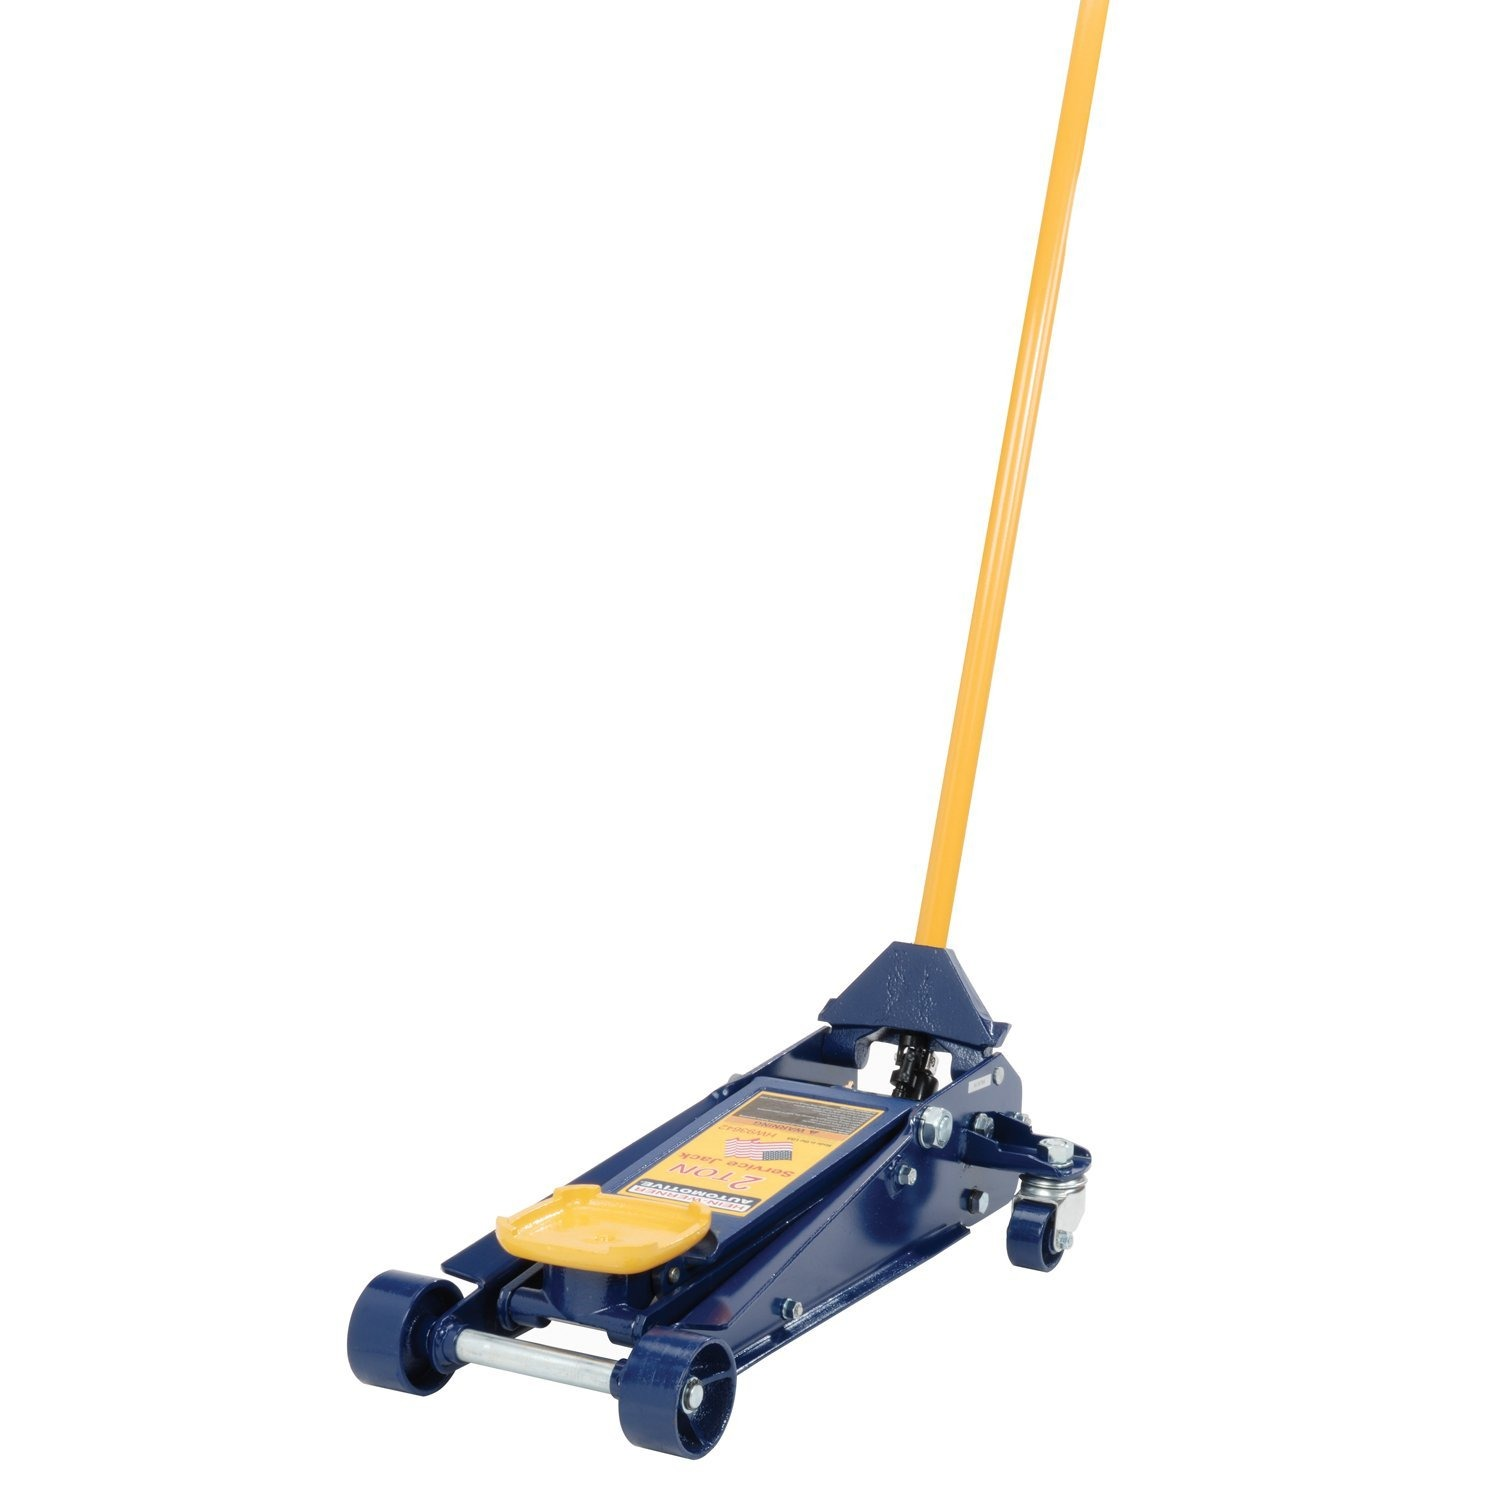 Floor Jack Reviews